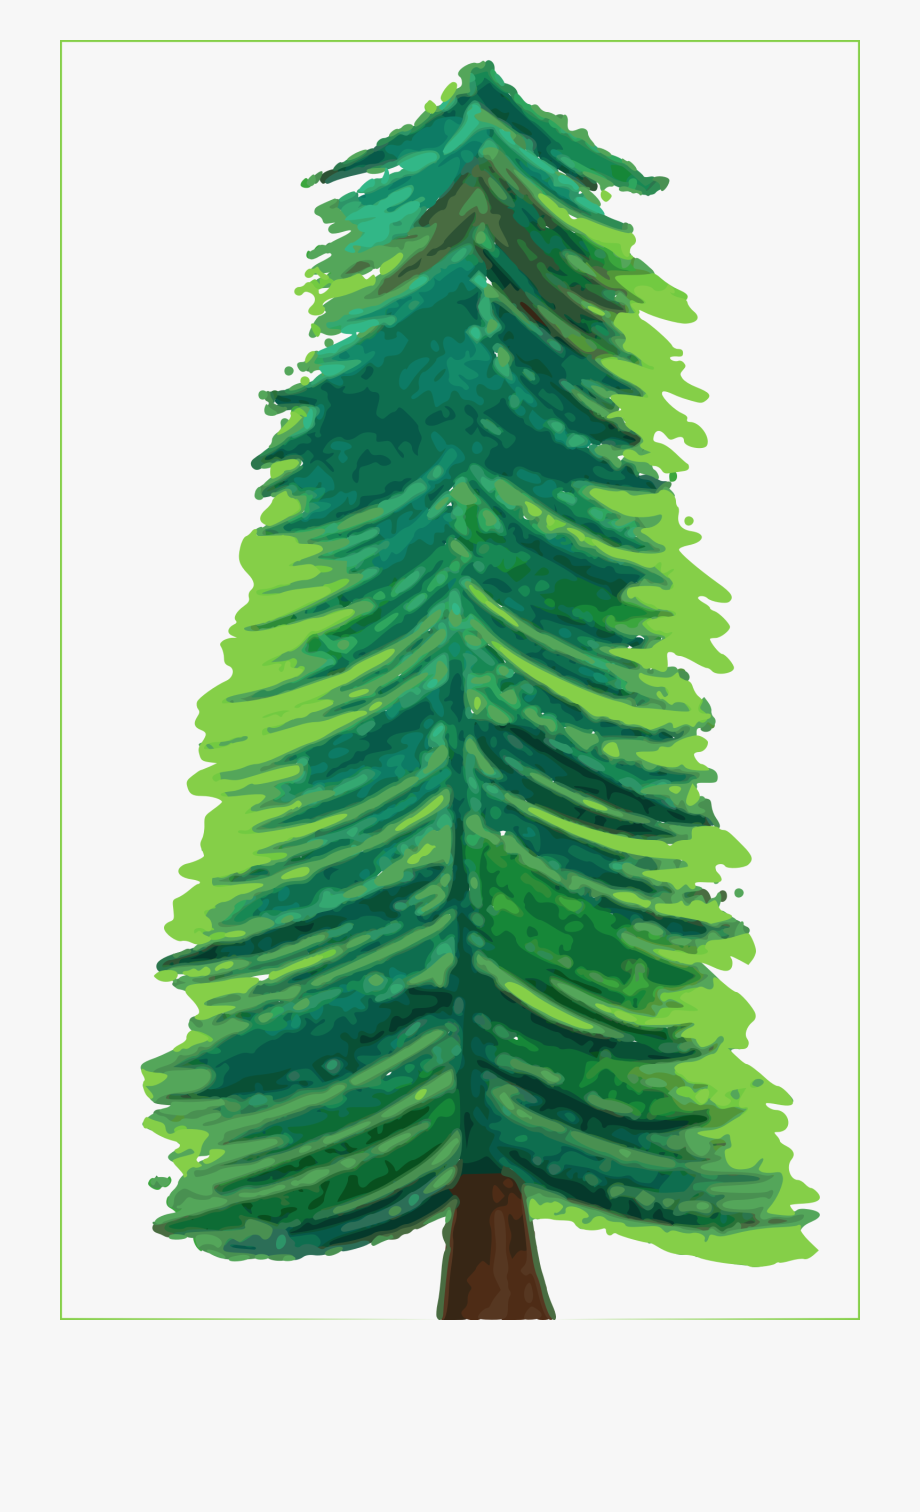 Christmas tree clipart color banner free library Color Big Image Png - Clipart Transparent Background Christmas Tree ... banner free library